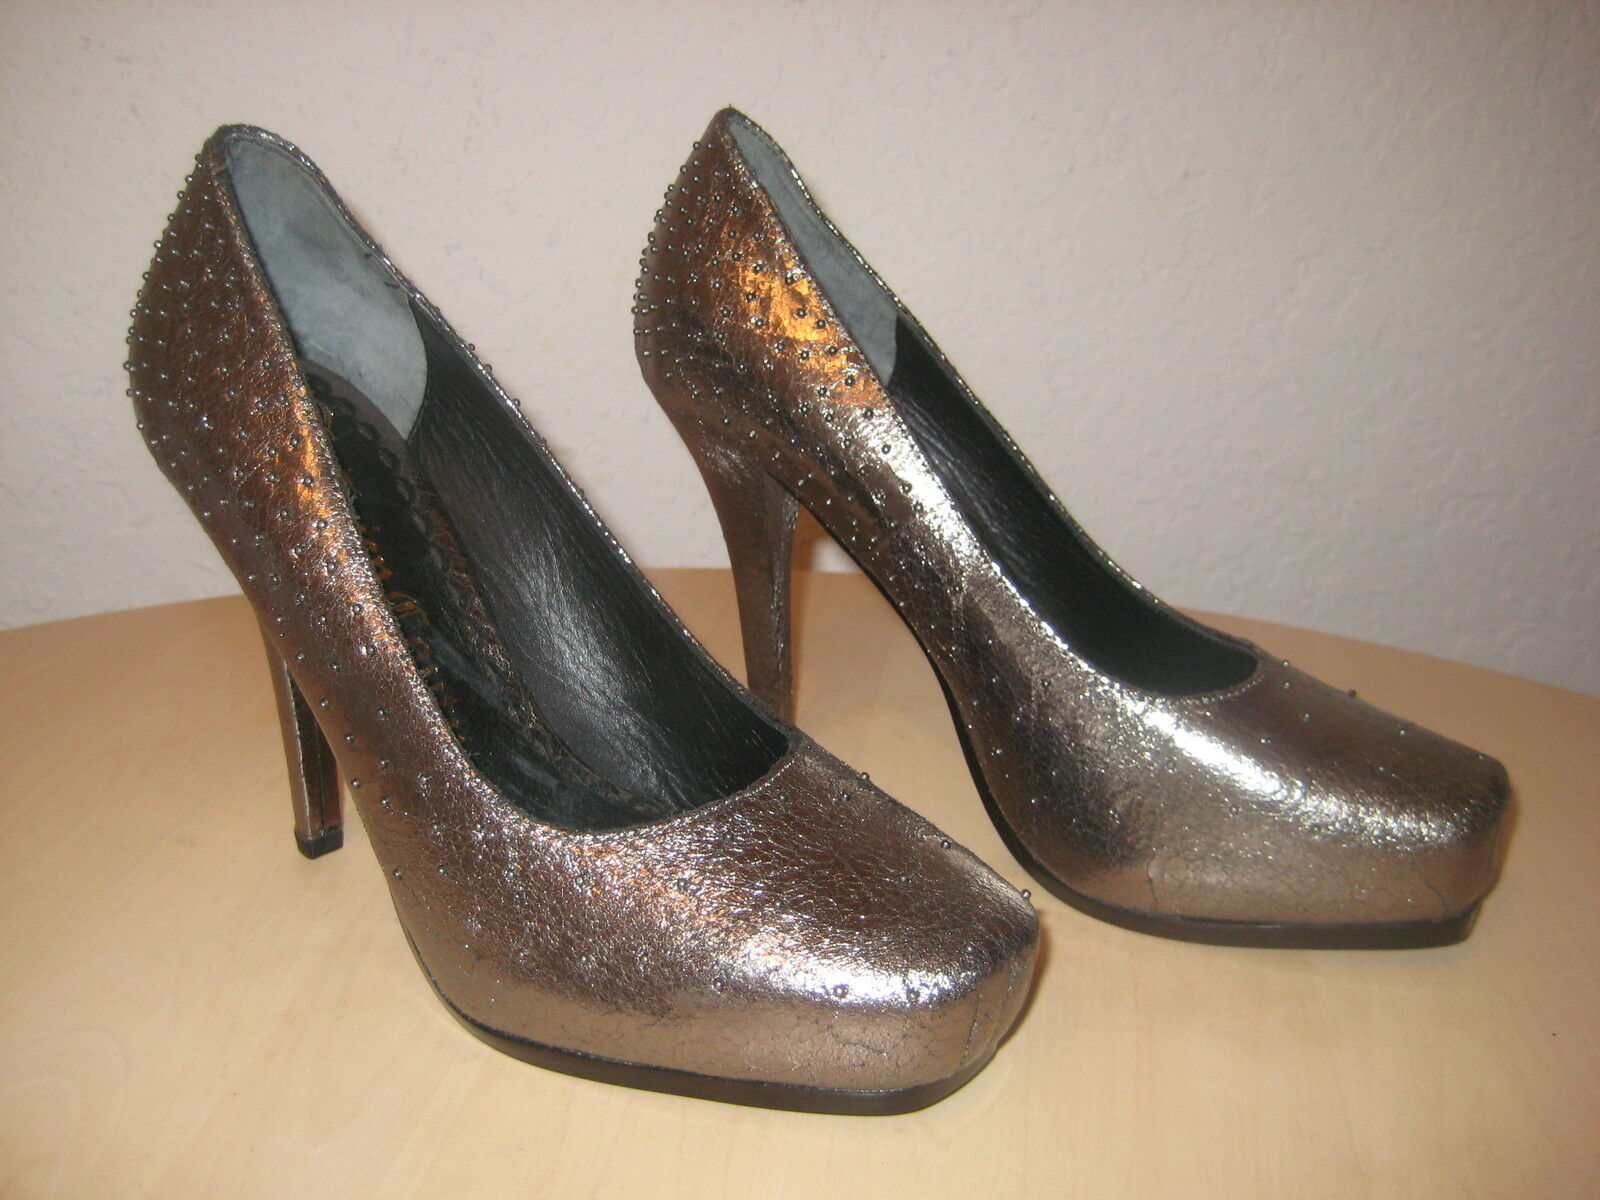 Juicy Couture Schuhes Größe 7.5 M Damenschuhe NEU Tessa Pewter Crackle Metallic Heels